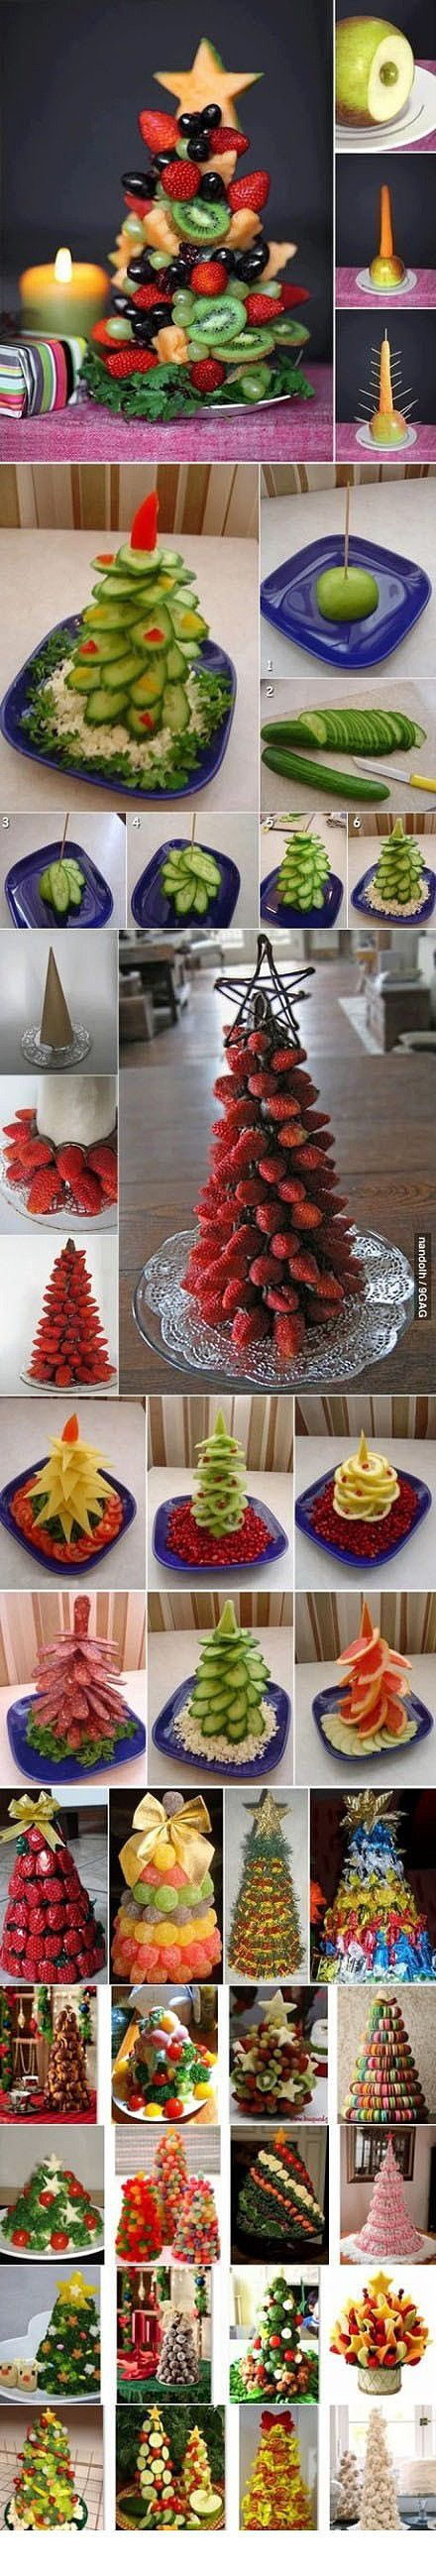 30 ways to make fruit Christmas trees | How To Instructions